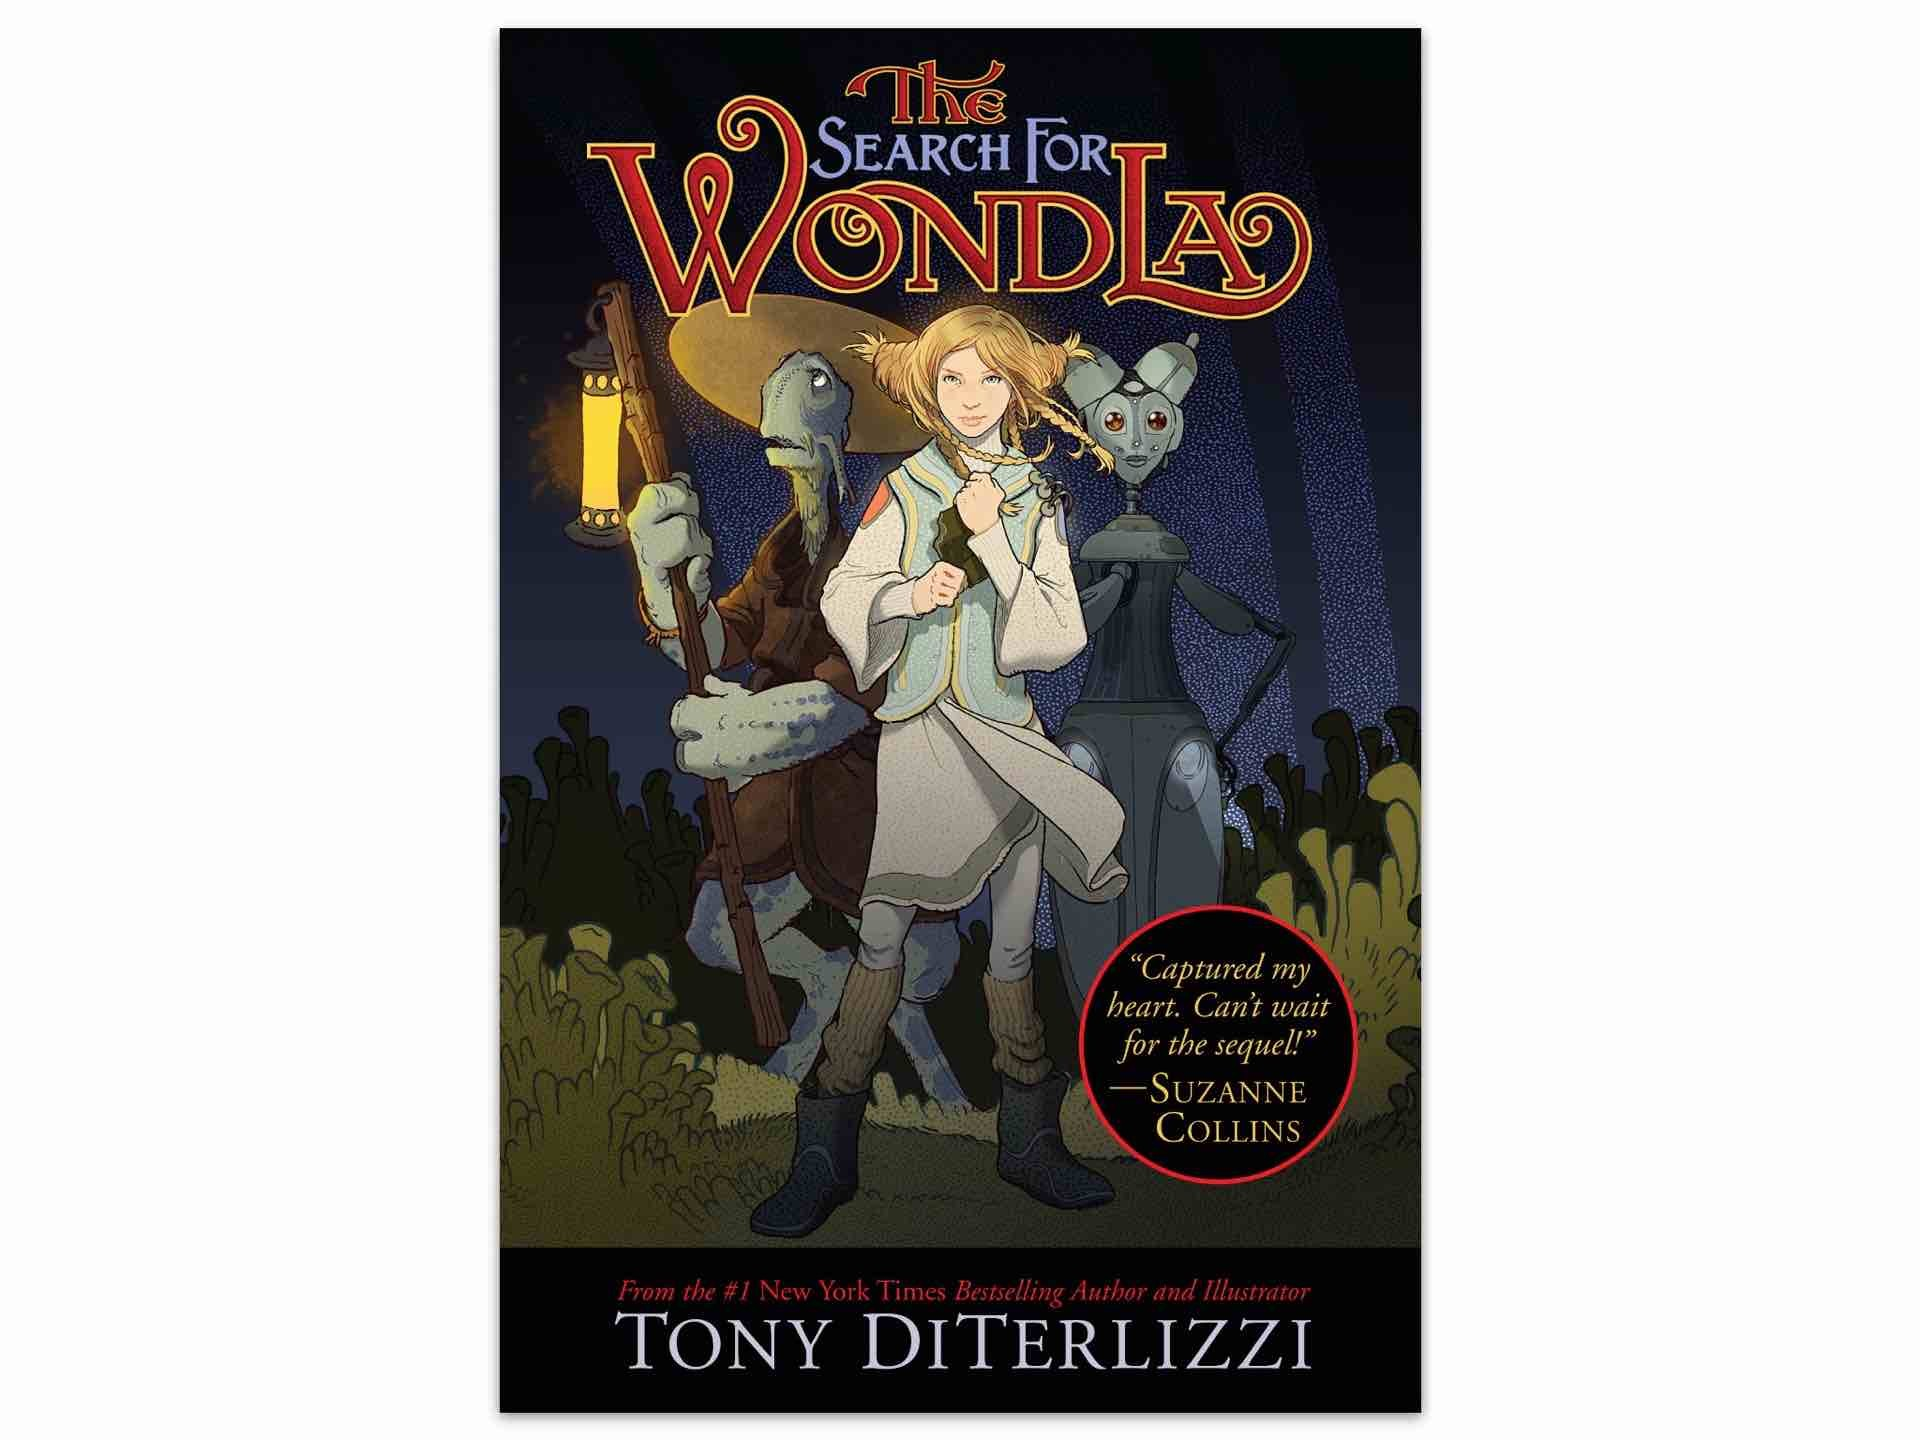 The Search for WondLa by Tony DiTerlizzi.